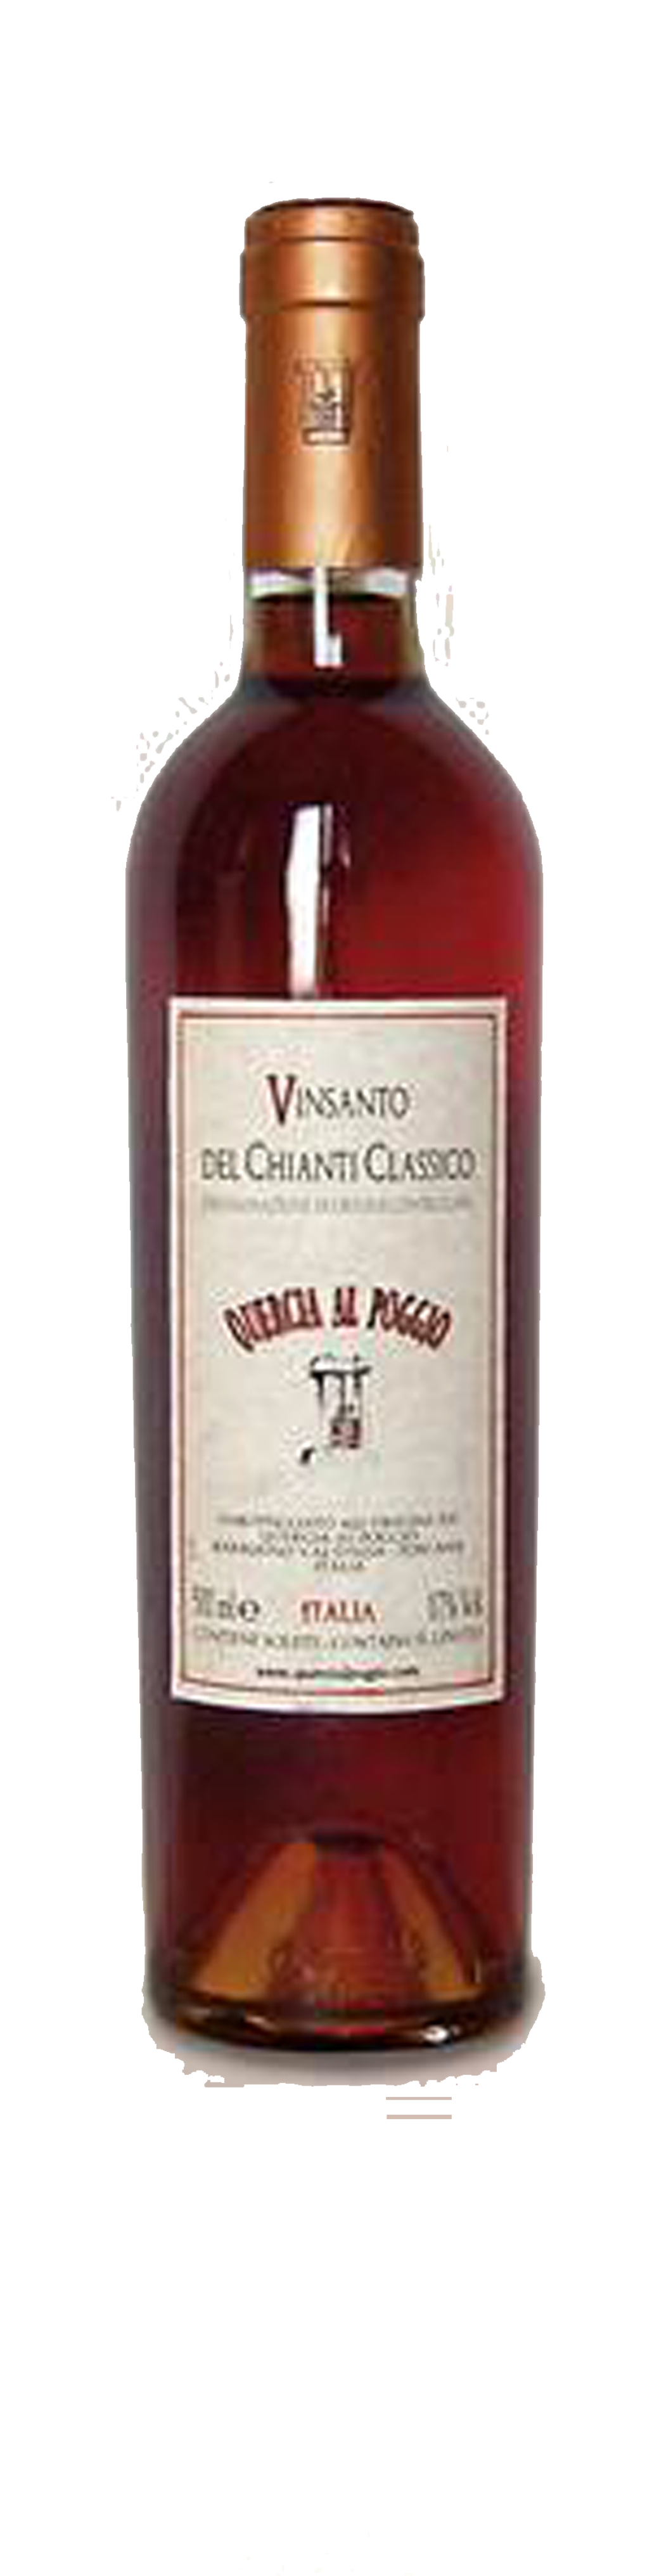 Image of product Vin Santo